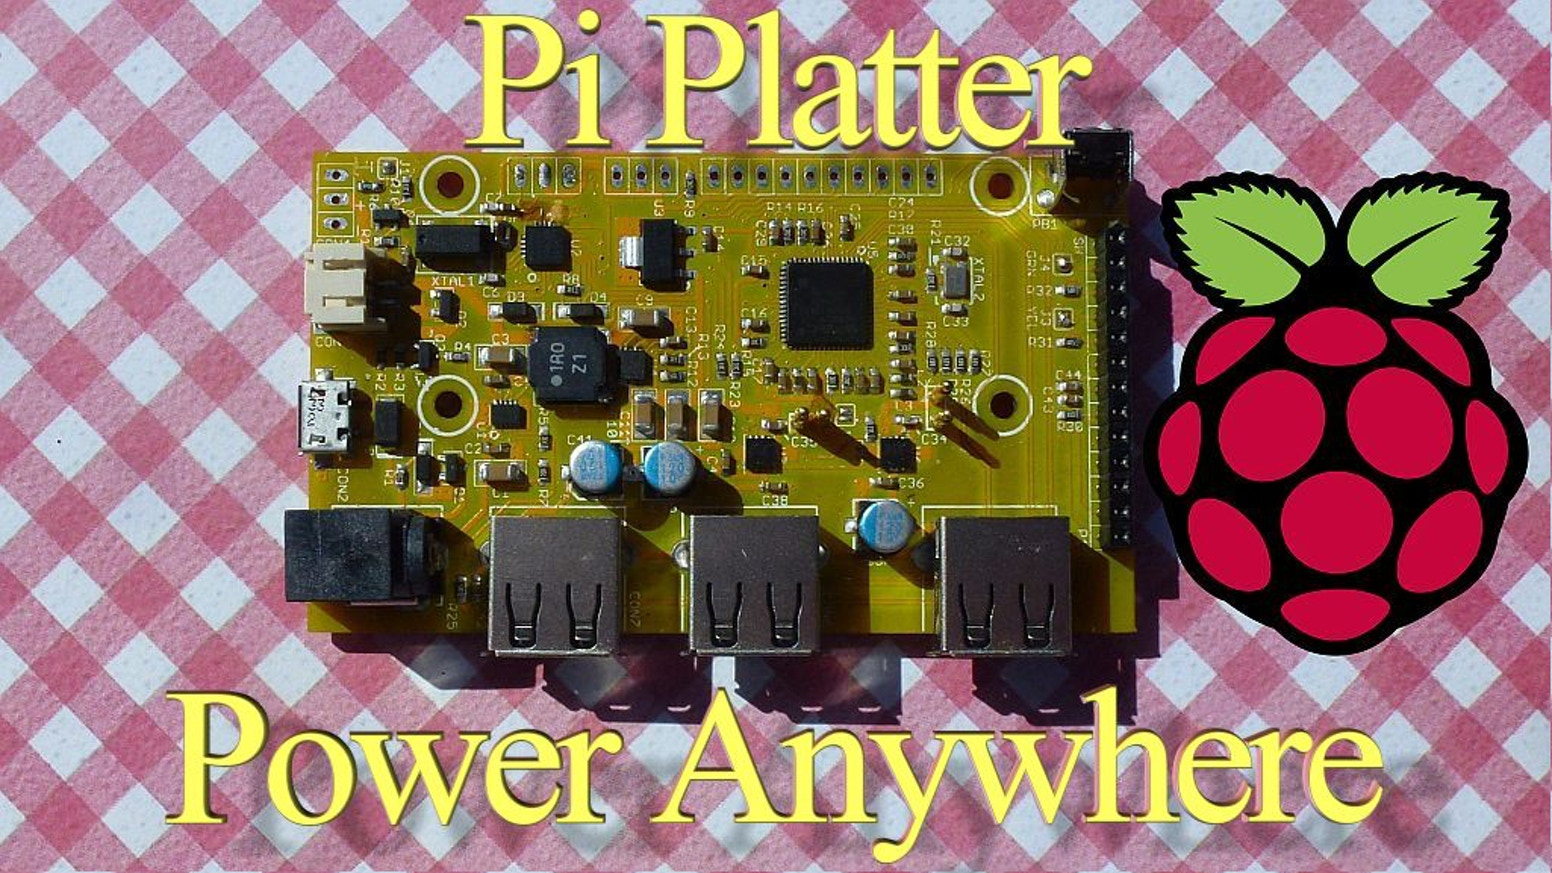 Solar Ups Pi Platter For Raspberry By Mike Seiler Rocket Blue Battery Via The Mini Usb Port On Charging Circuit Or A Versatile Board Powering Your From Sun